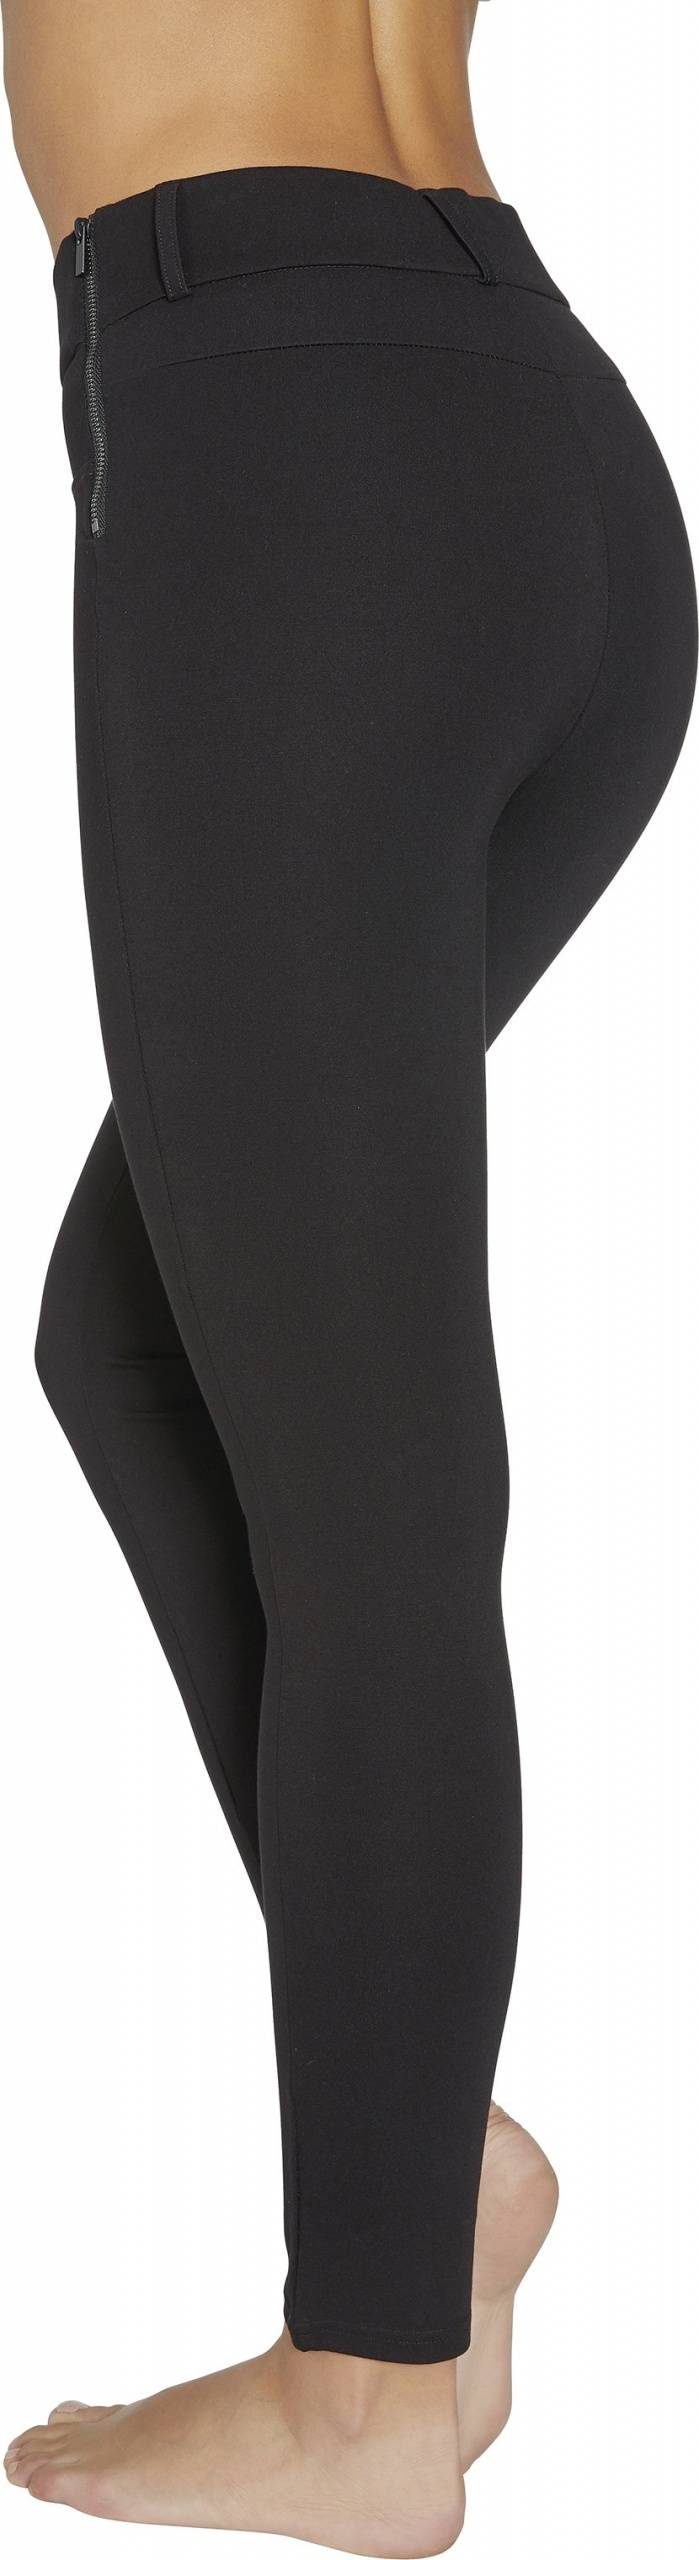 LEGGINGS FANTASIA PUSH-UP REF.70242 YSABEL MORA